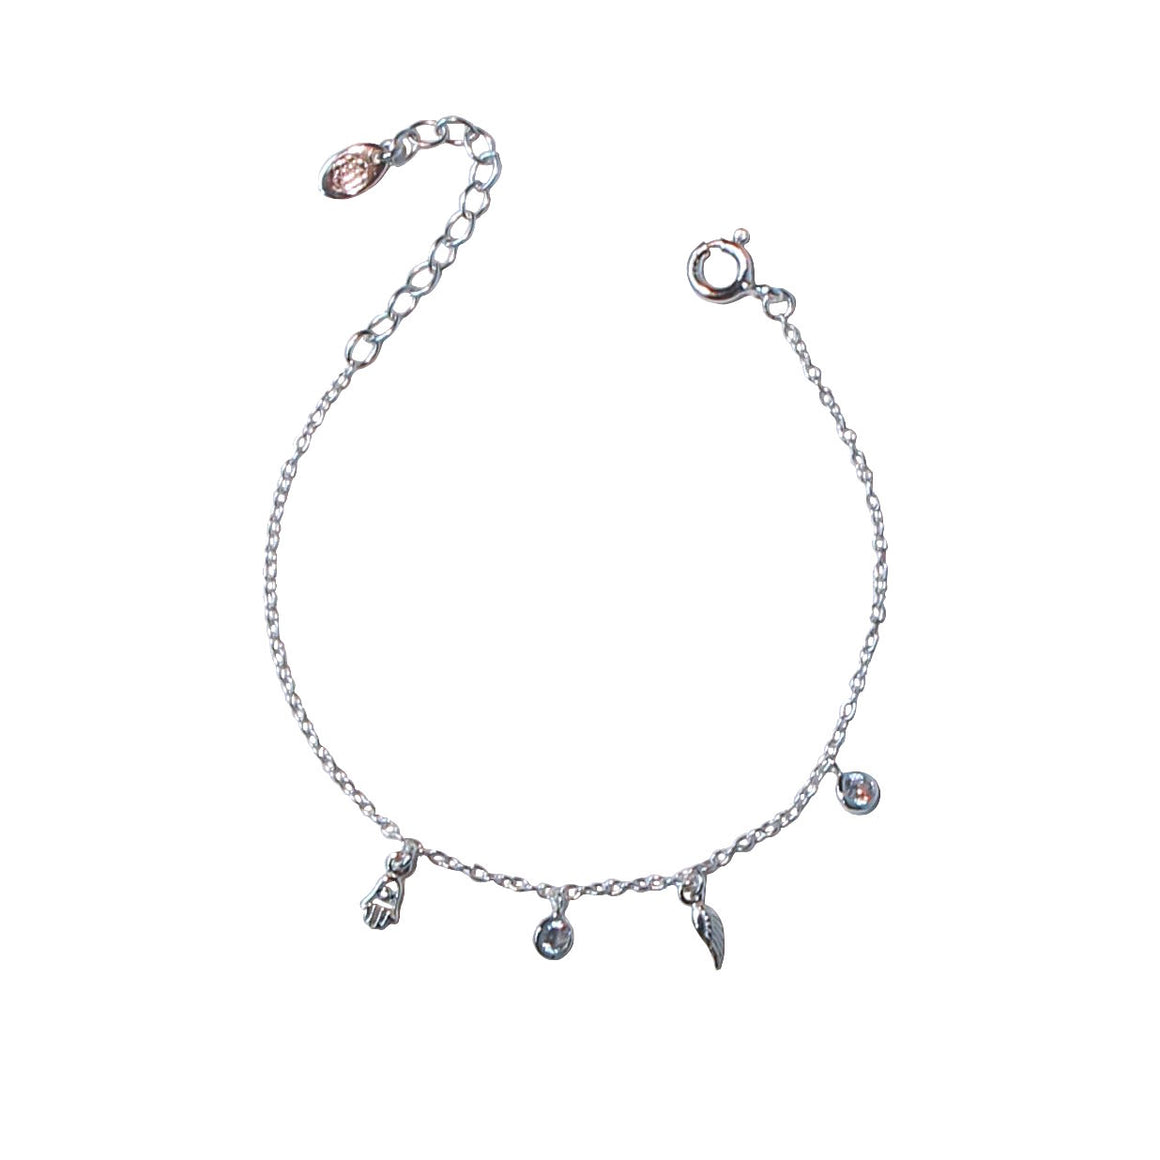 silver mini charms chain bracelet